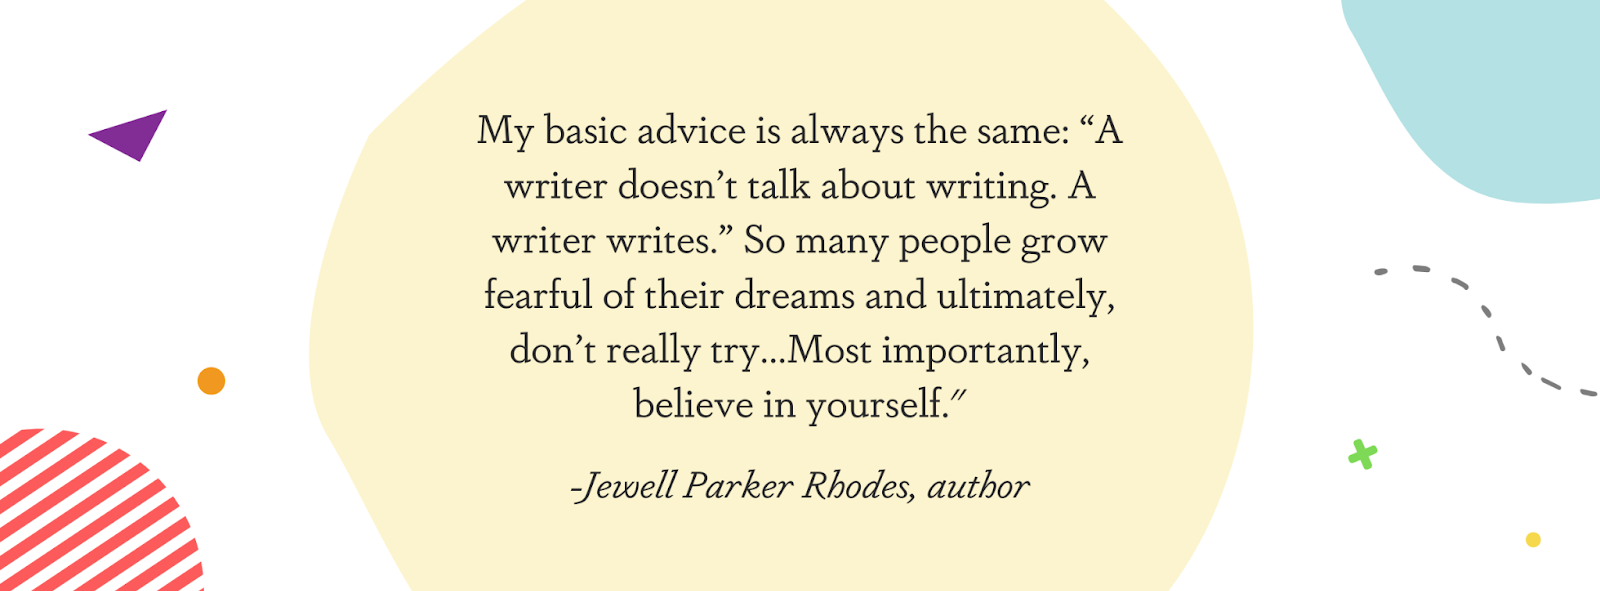 """This image displays a quote from author Jewel Parker Rhodes: """"My basic advice is always the same: """"A writer doesn't talk about writing. A writer writes."""" So many people grow fearful of their dreams and ultimately, don't really try...Most importantly, believe in yourself."""""""